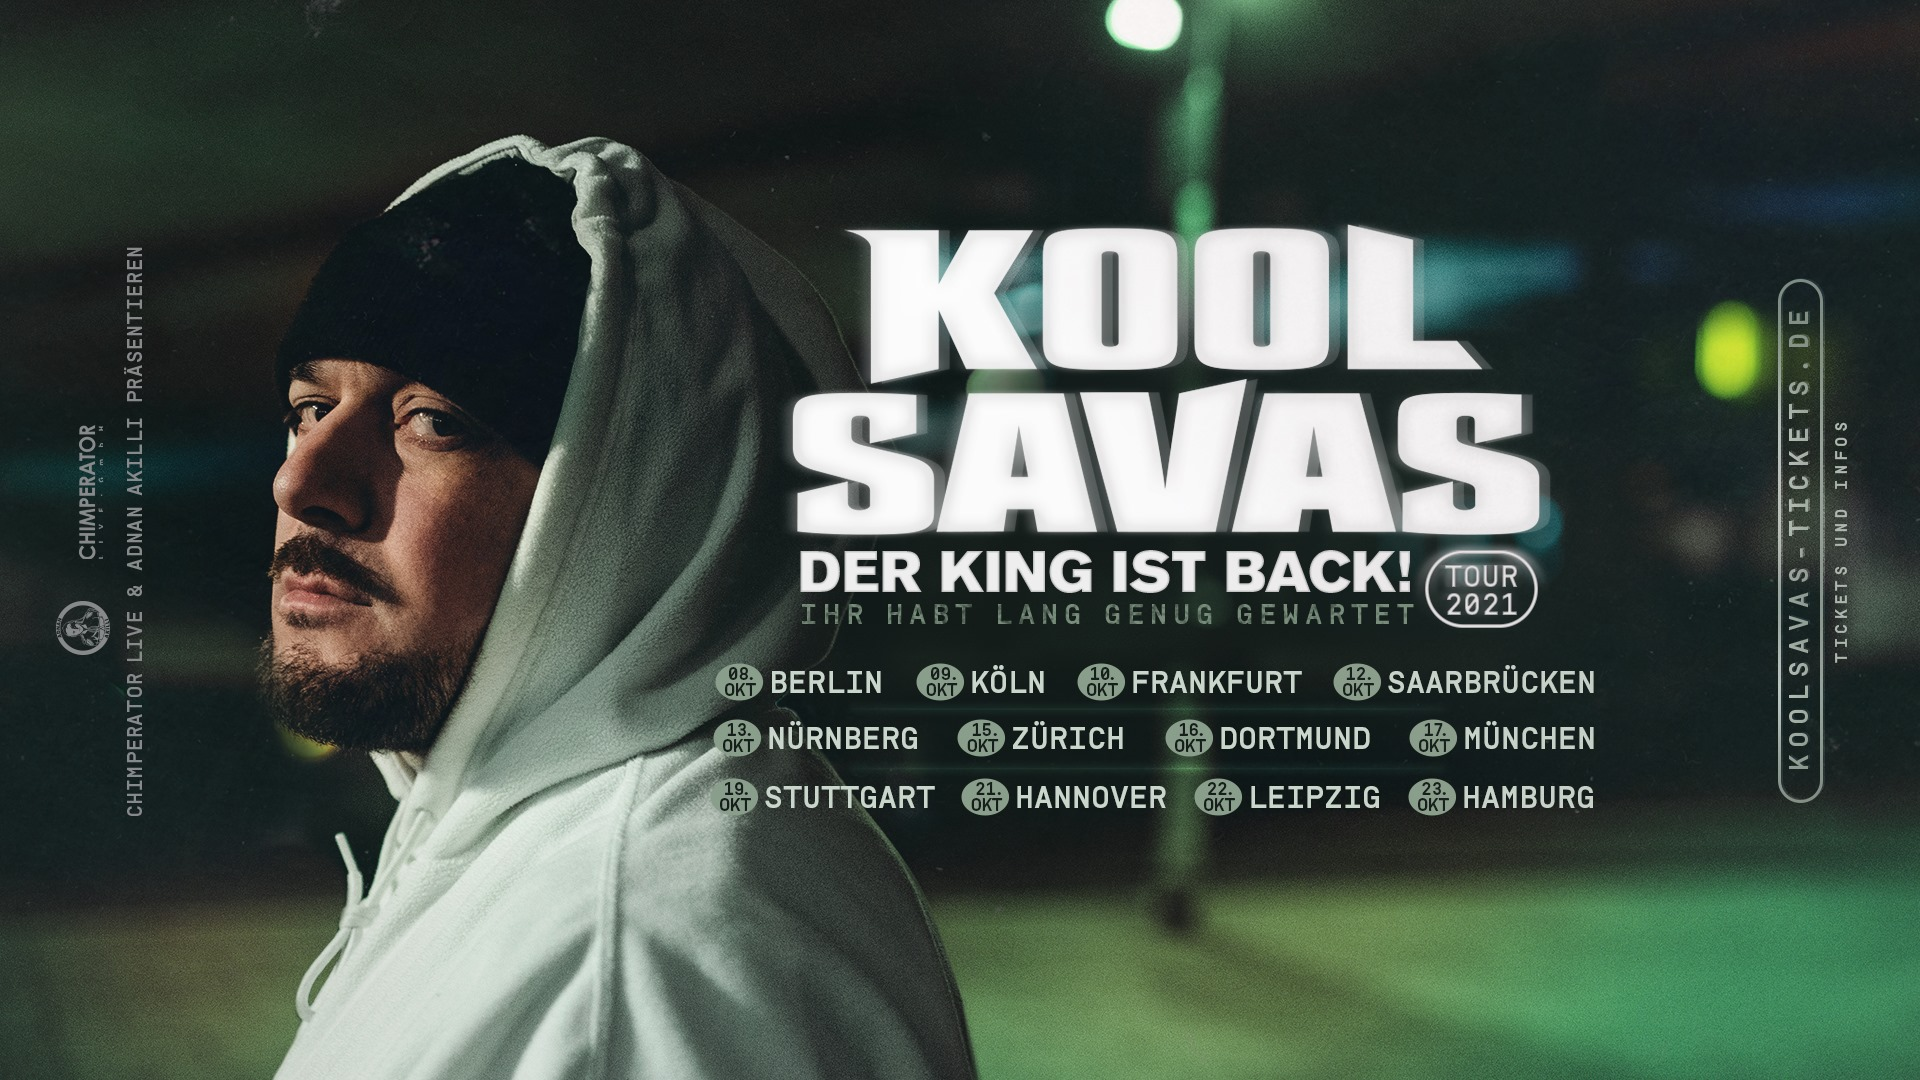 Kool Savas - der king is back